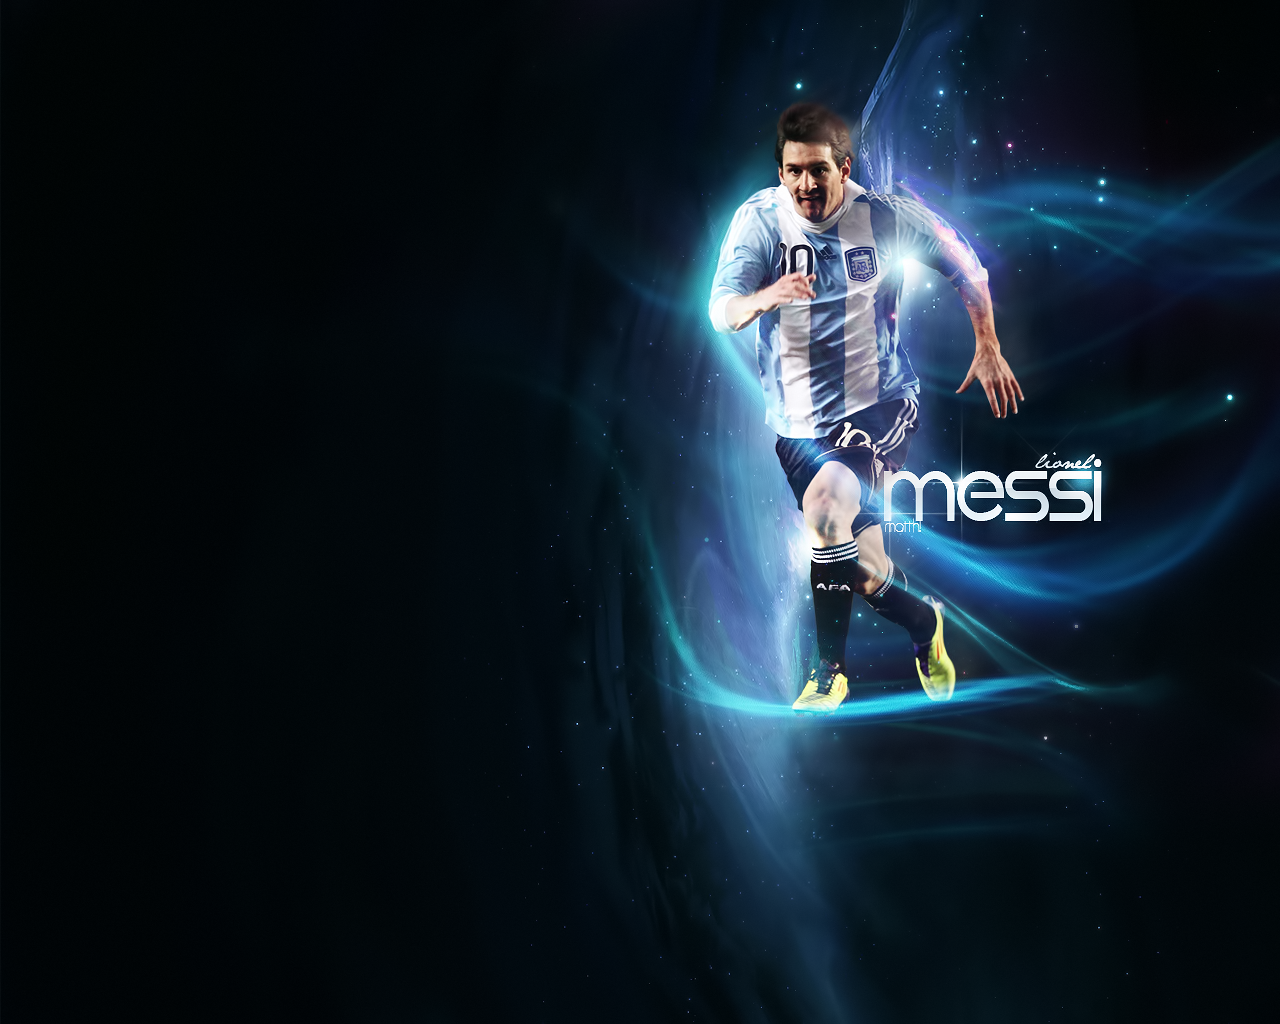 Lionel Messi Hd Wallpapers 1080p Http Www Wallpapersoccer Com Lionel Messi Hd Wallpapers 1080p Html Lionel Messi Wallpapers Lionel Messi Messi